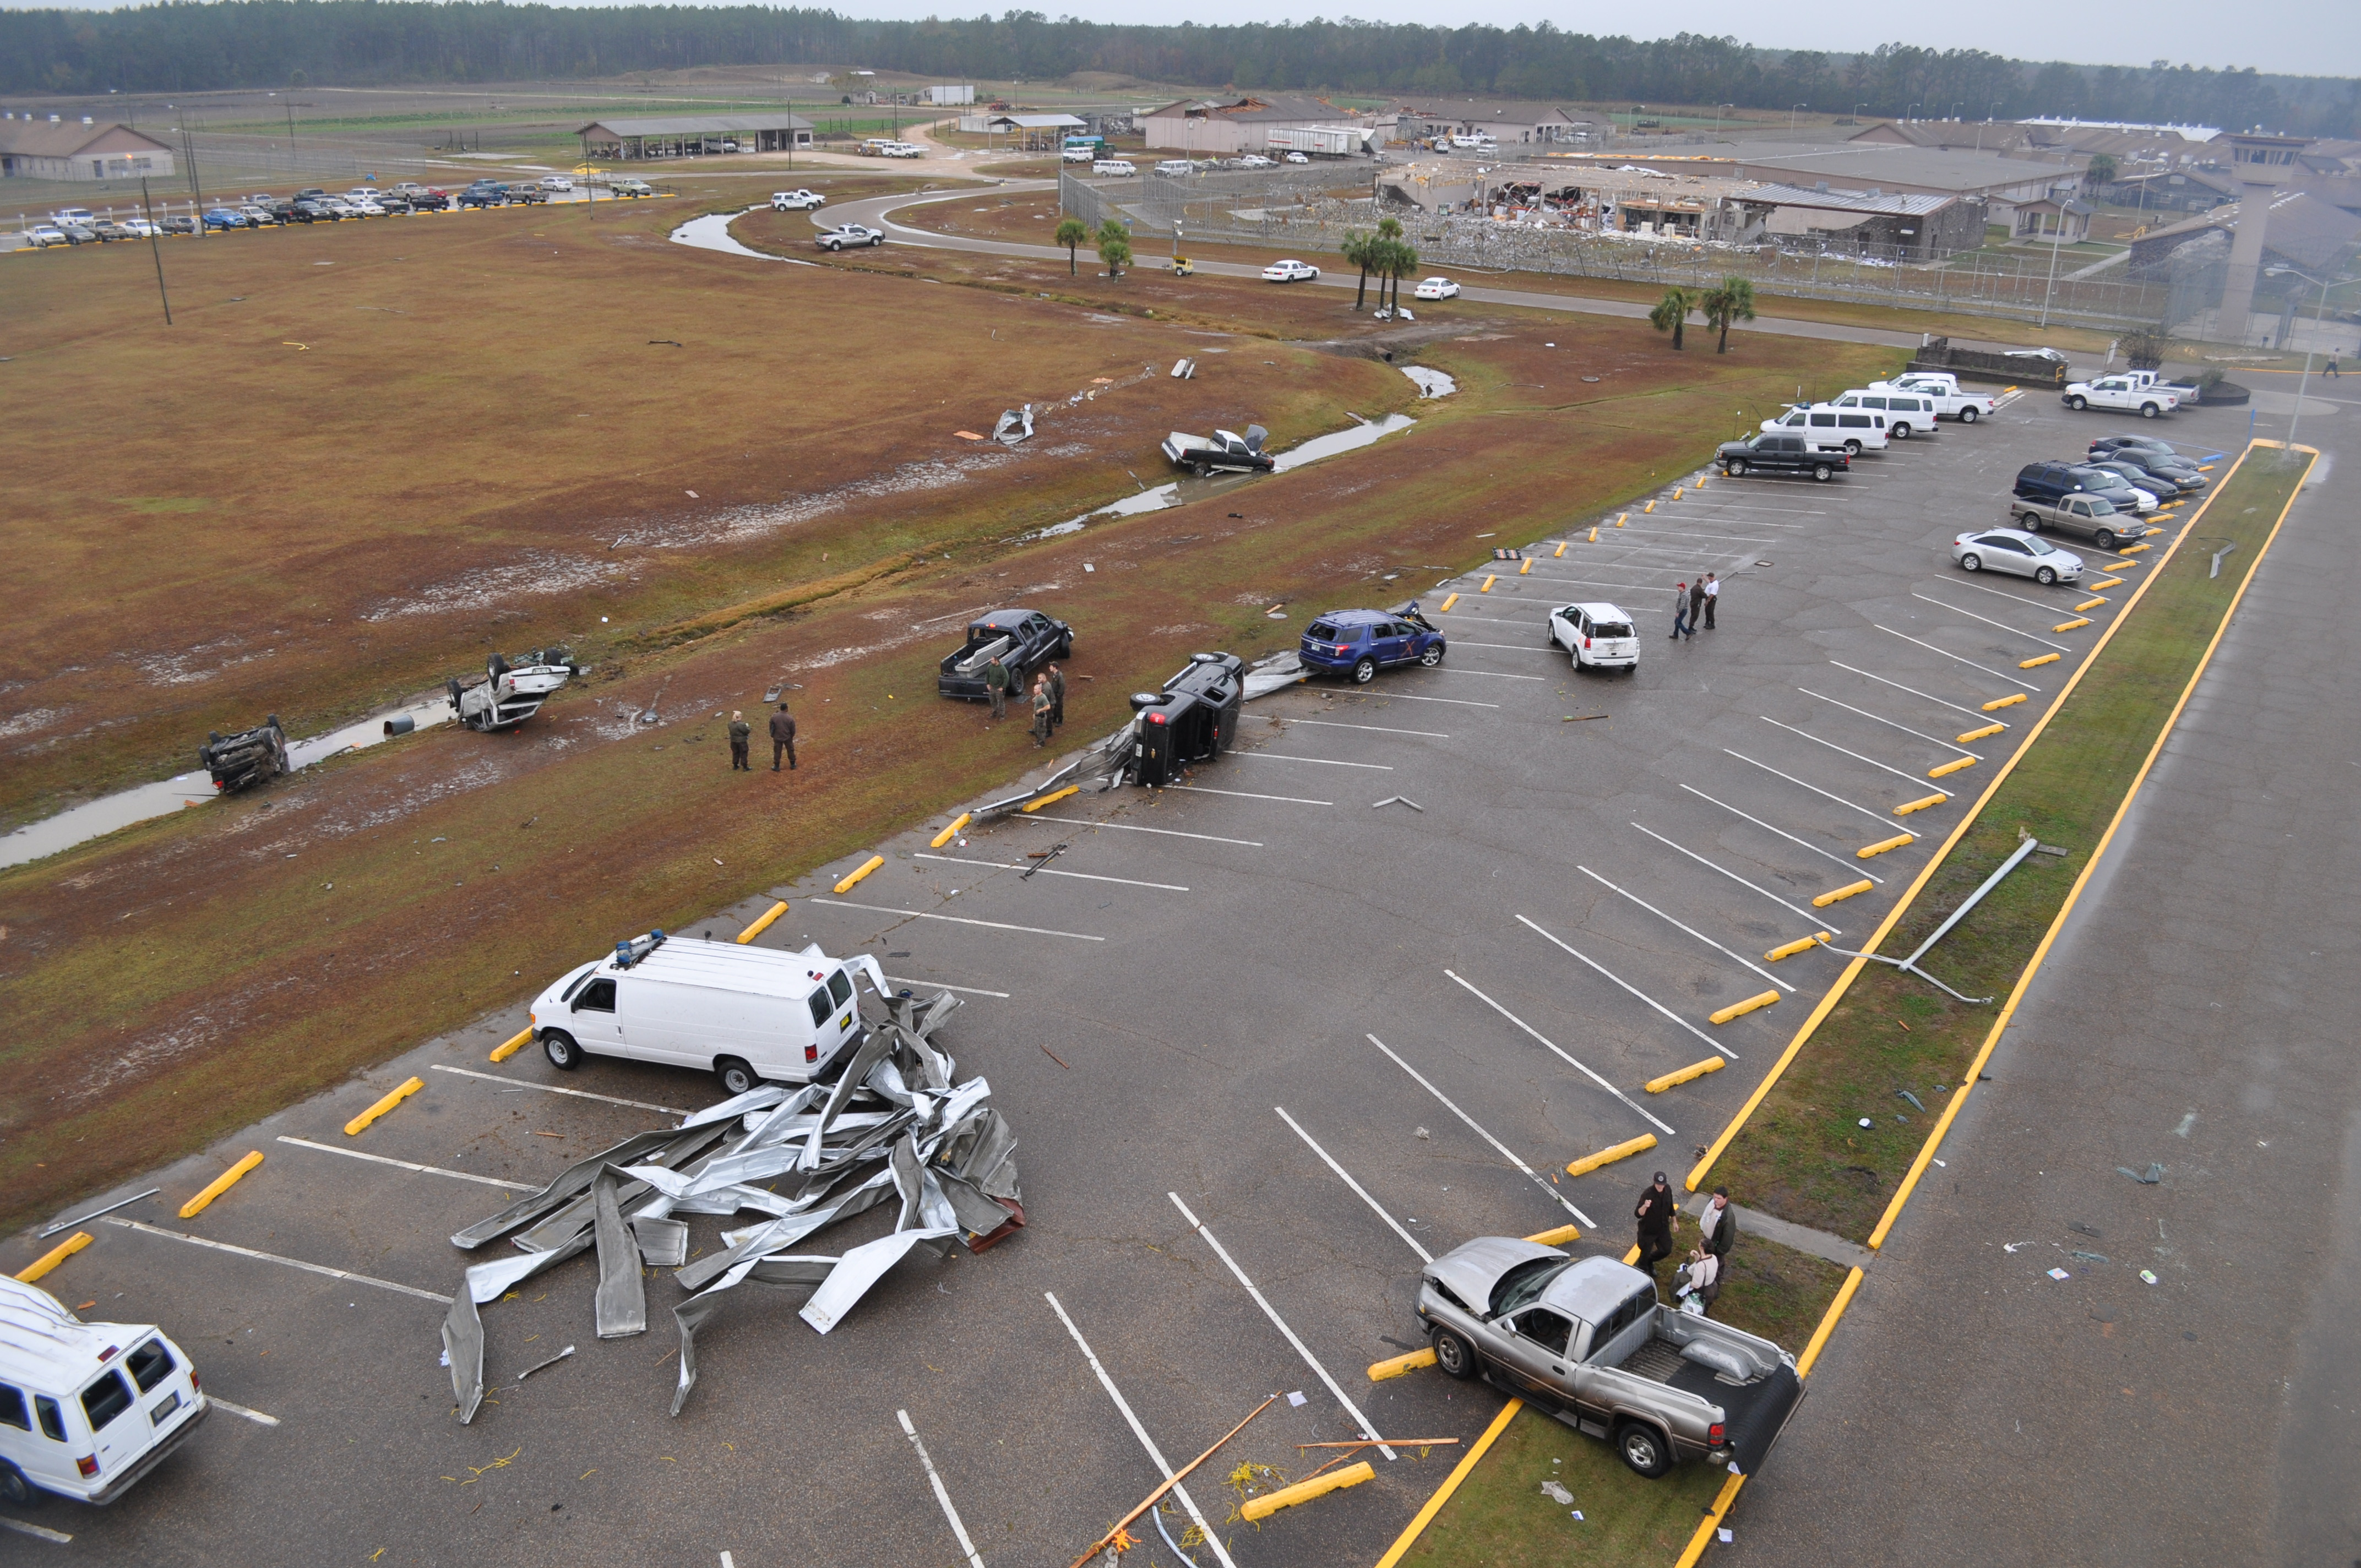 Damage to the Calhoun Correctional Institution southwest of Blountstown, FL that resulted from an EF2 tornado on November 17, 2014.